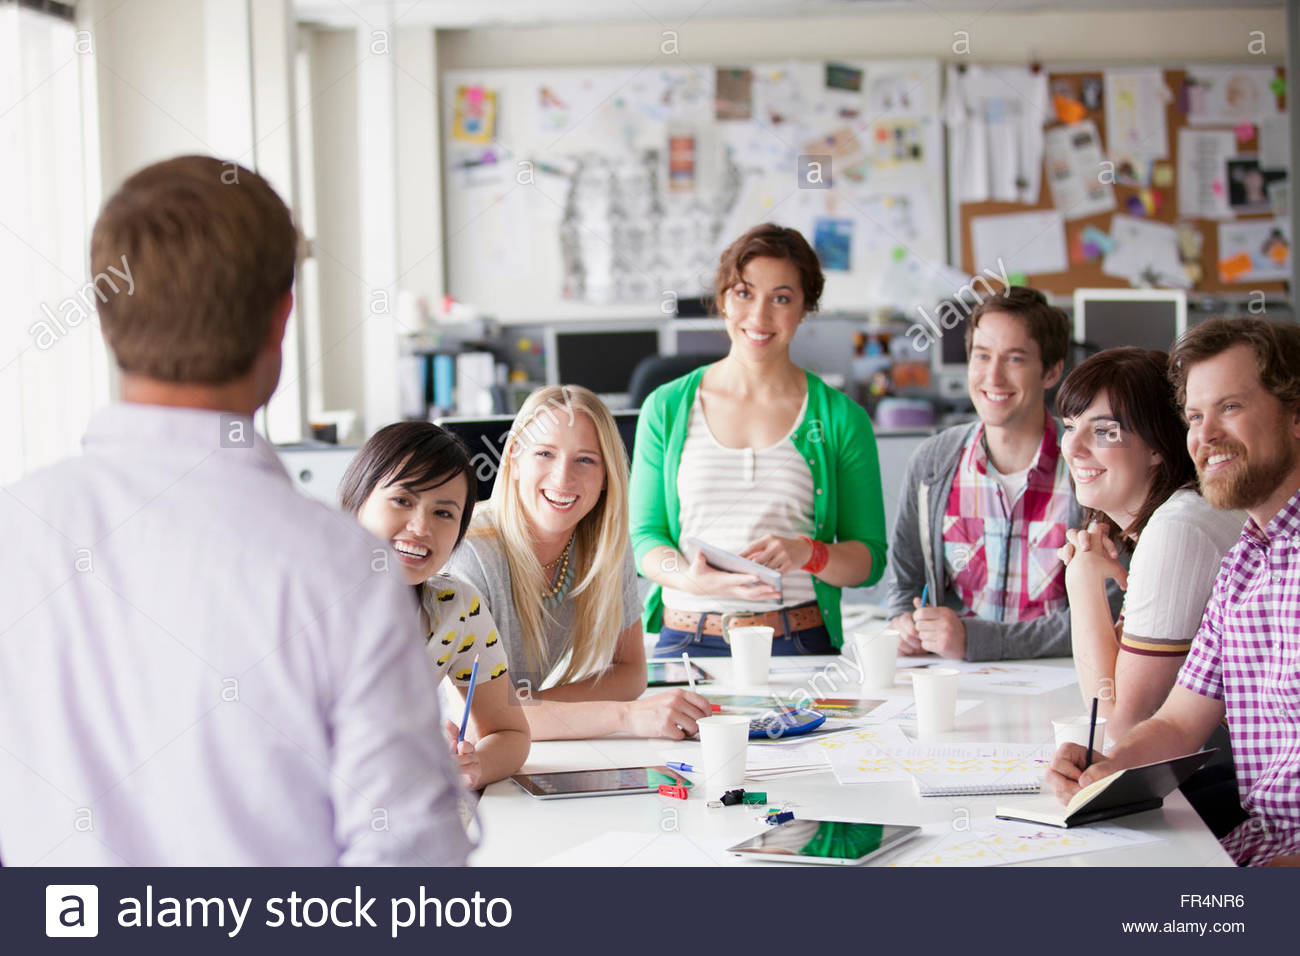 young creatives in a brainstorming session - Stock Image